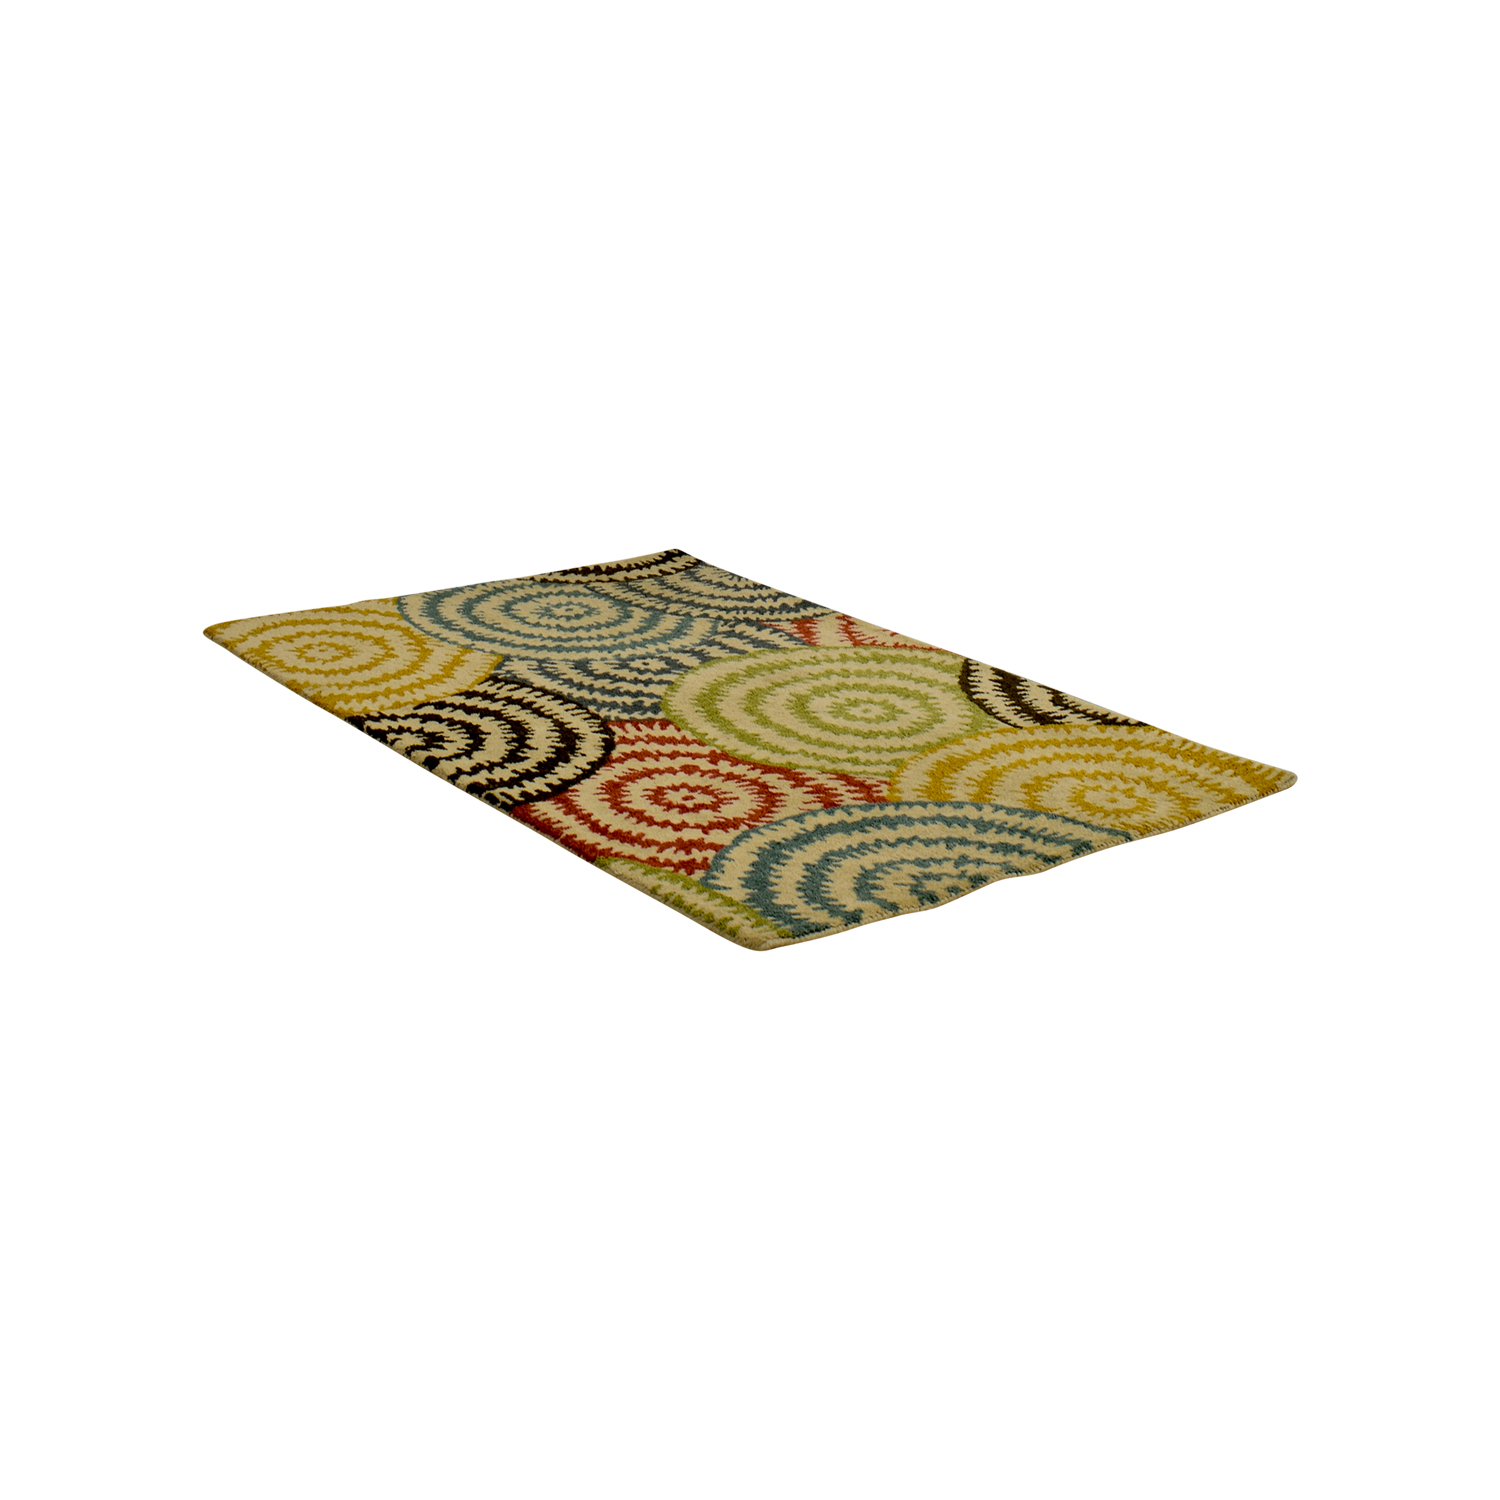 Crate & Barrel Crate & Barrel Pinwheel Rug second hand